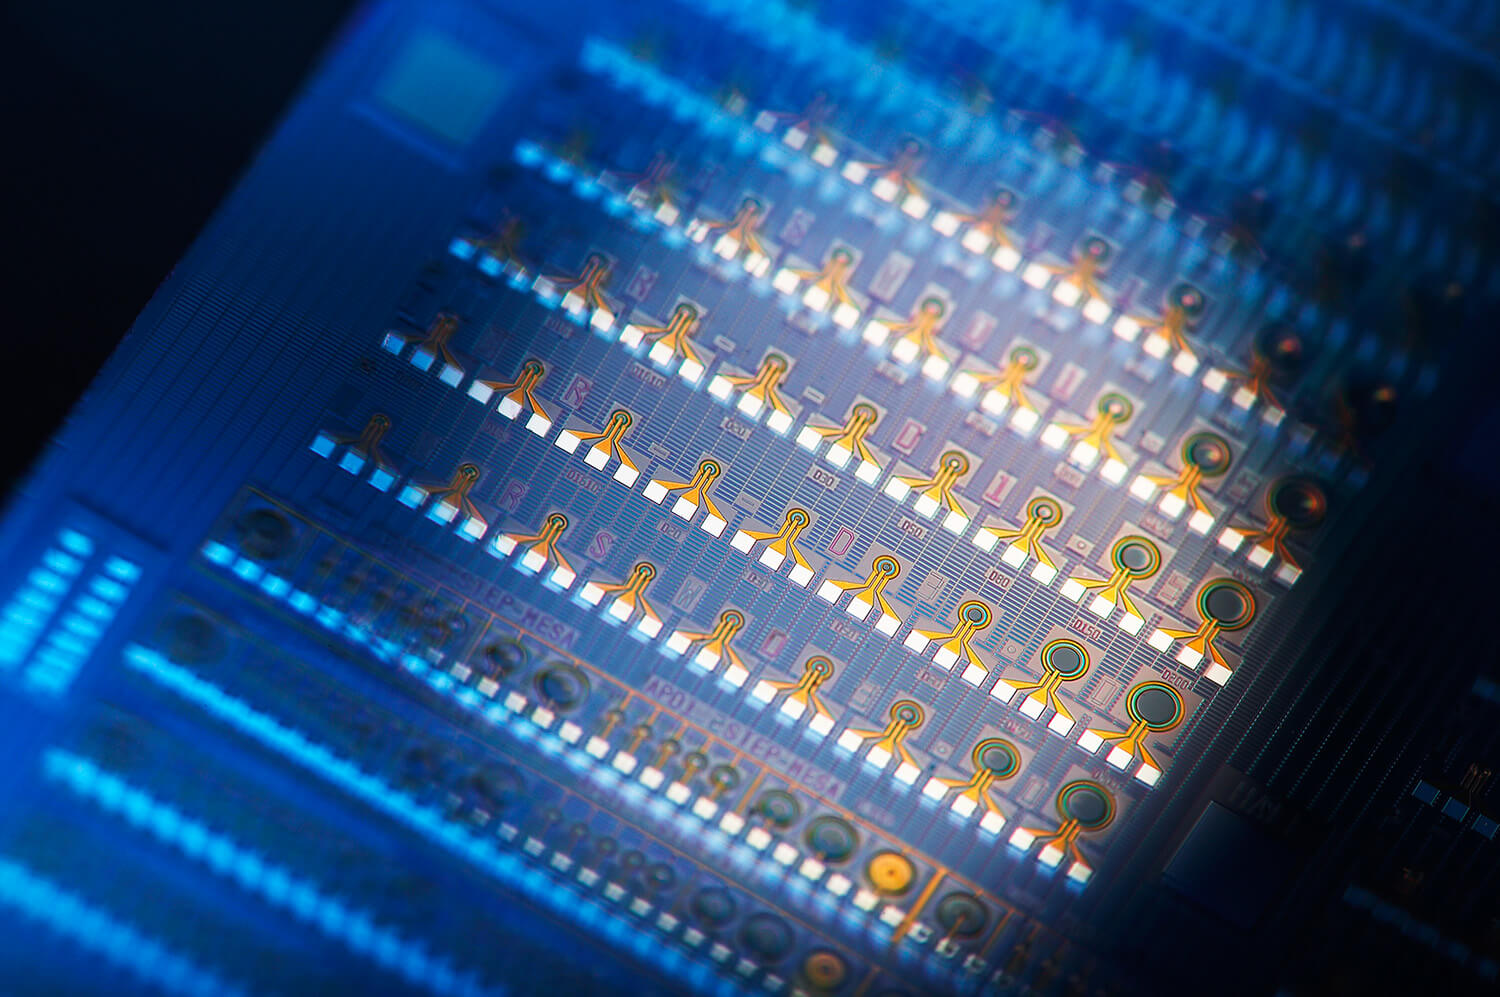 DARPA aims to take on electronics in the post-Moore's Law era